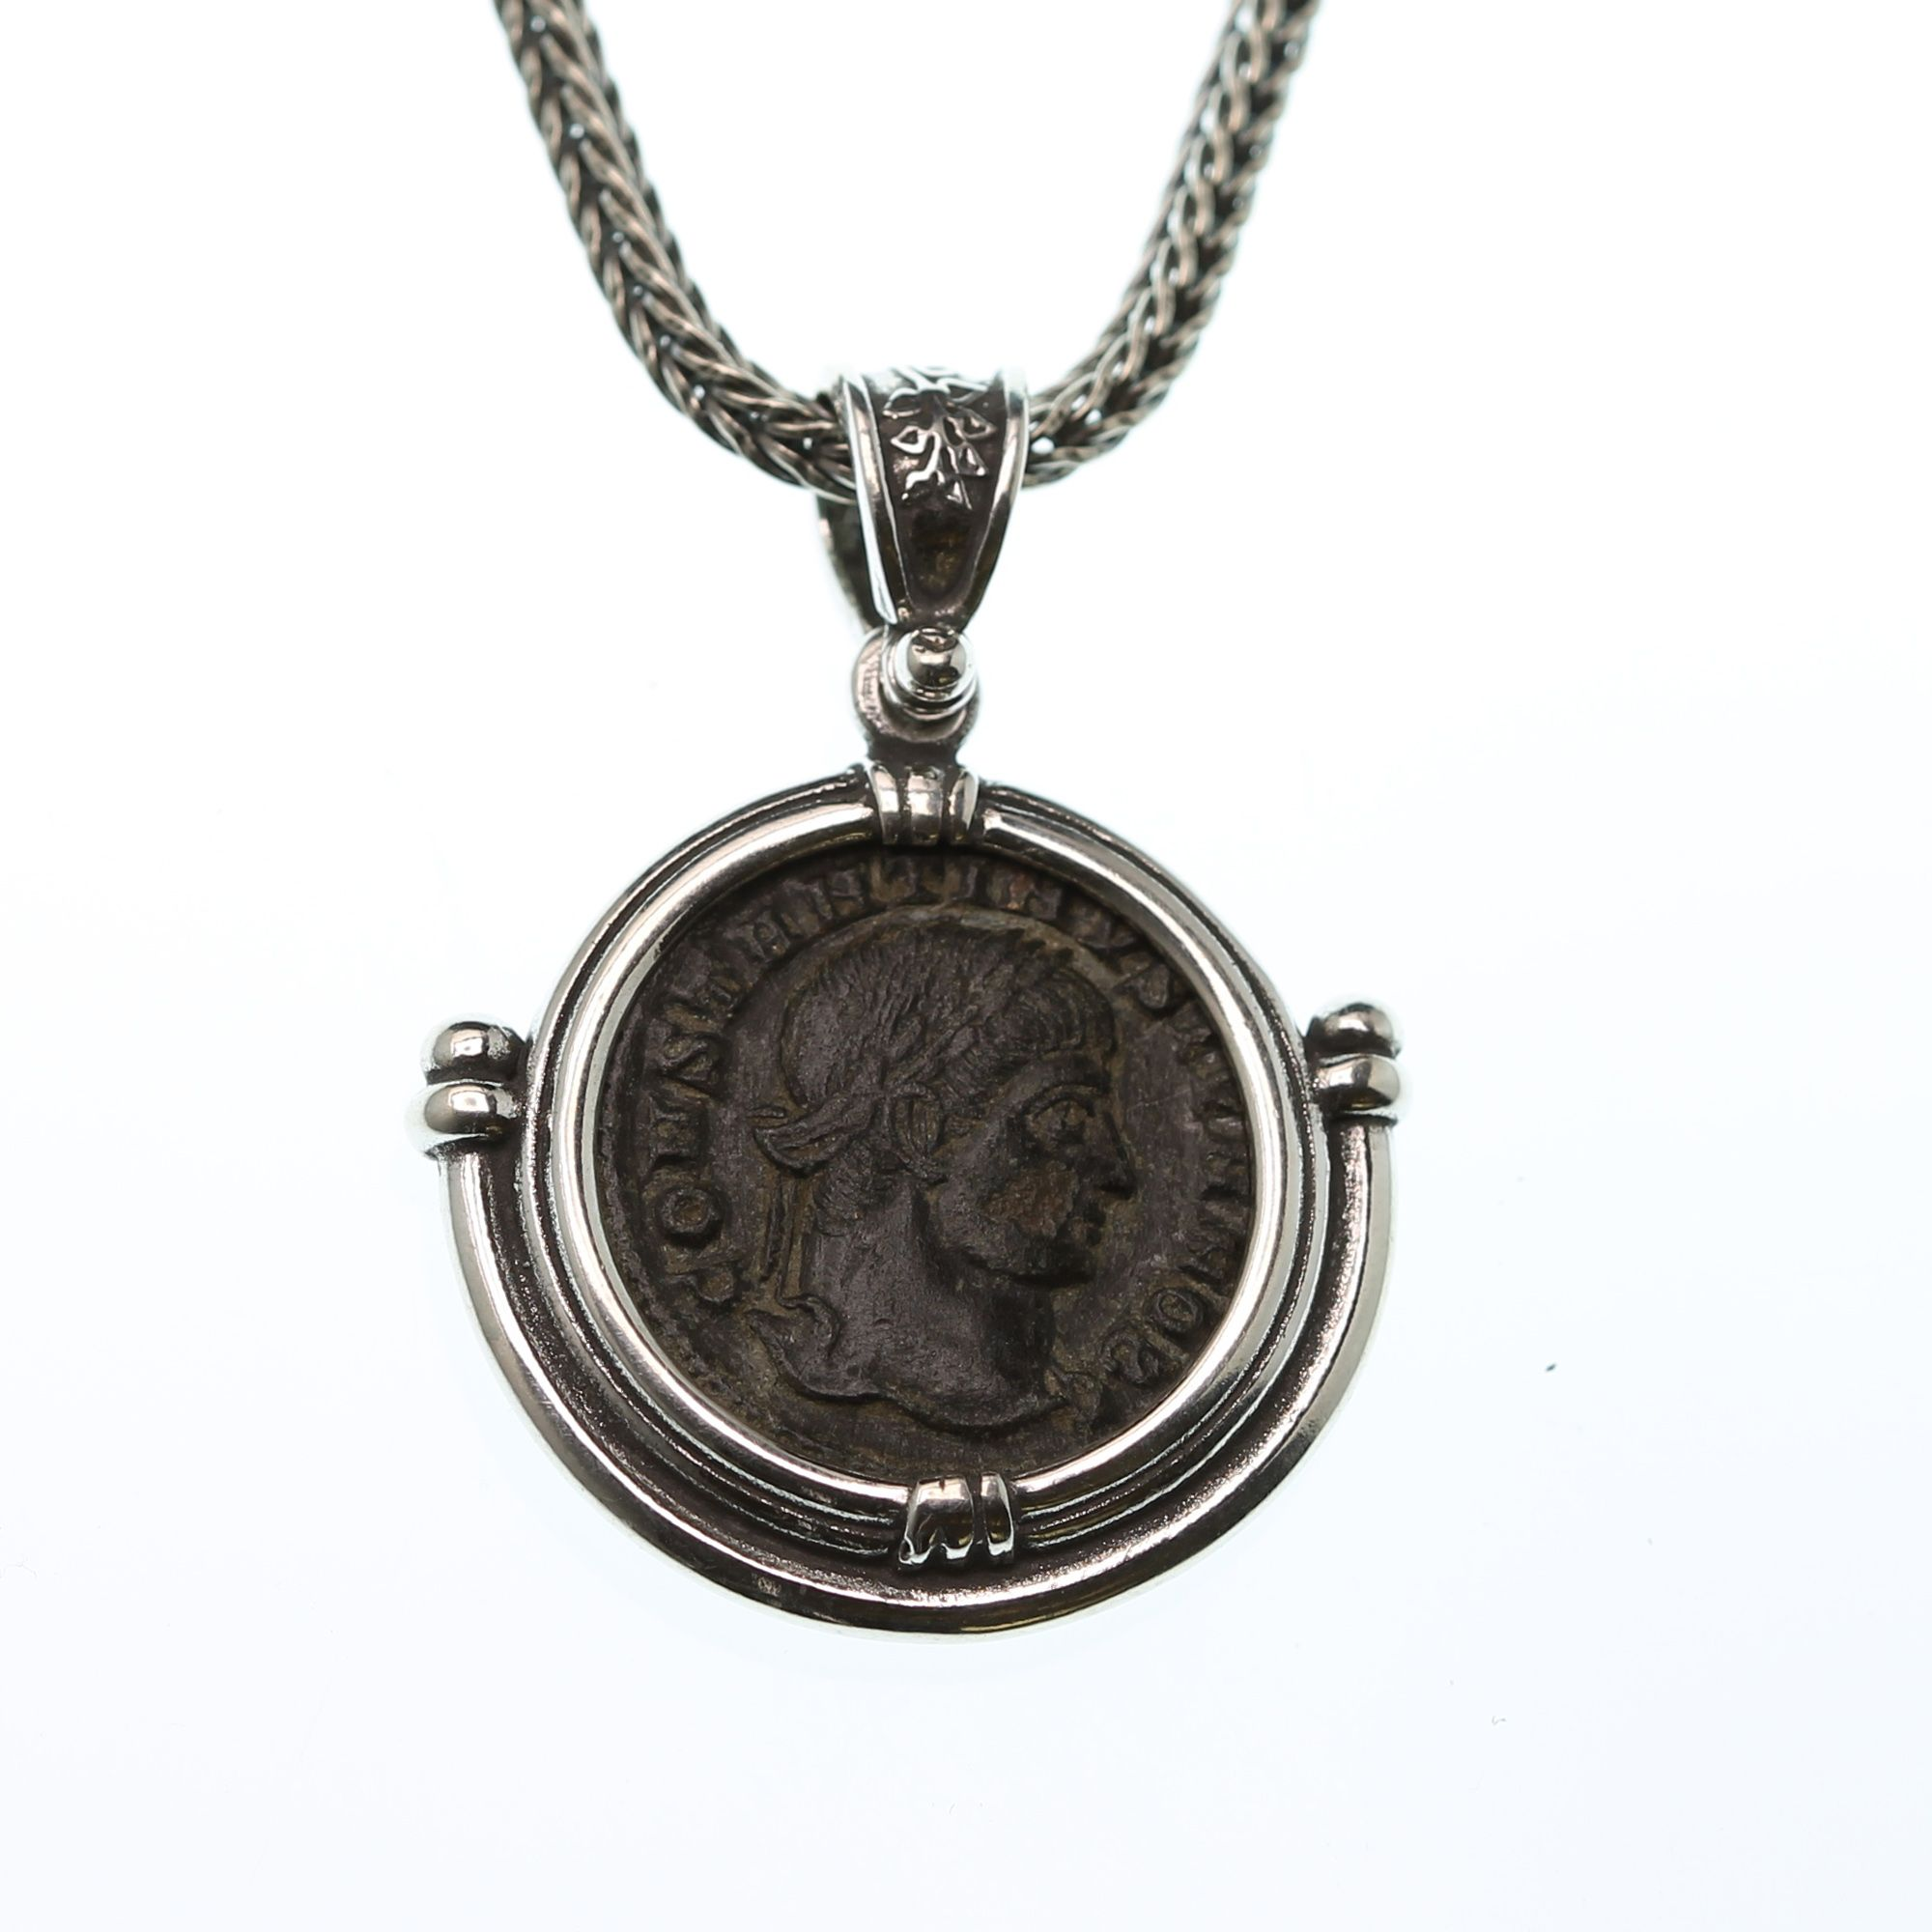 Ancient Roman Coin Necklace Pendant Jewelry  Genuine Ancient Roman Coin